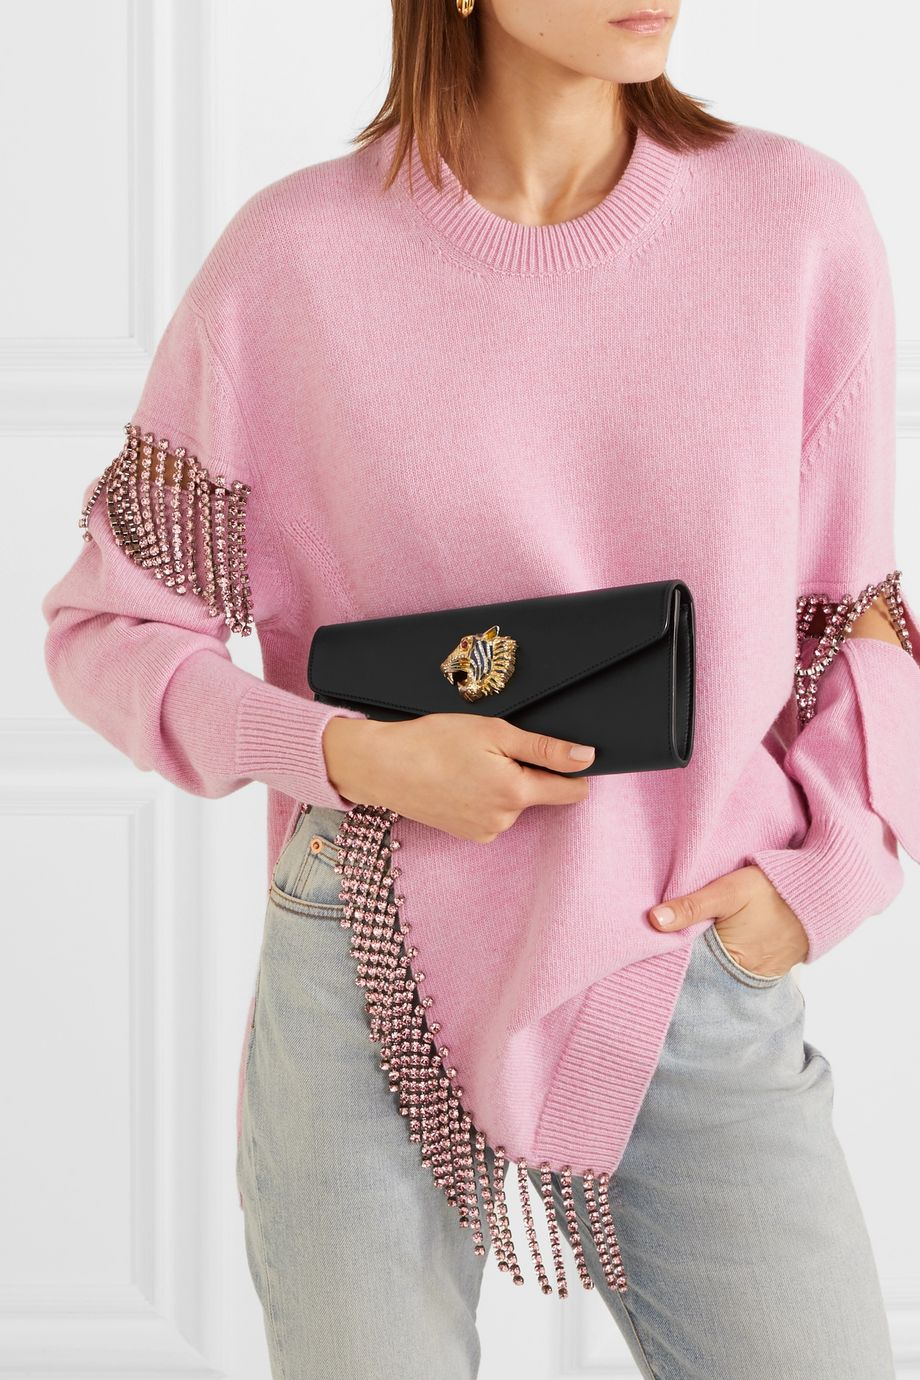 Gucci Broadway crystal-embellished leather clutch